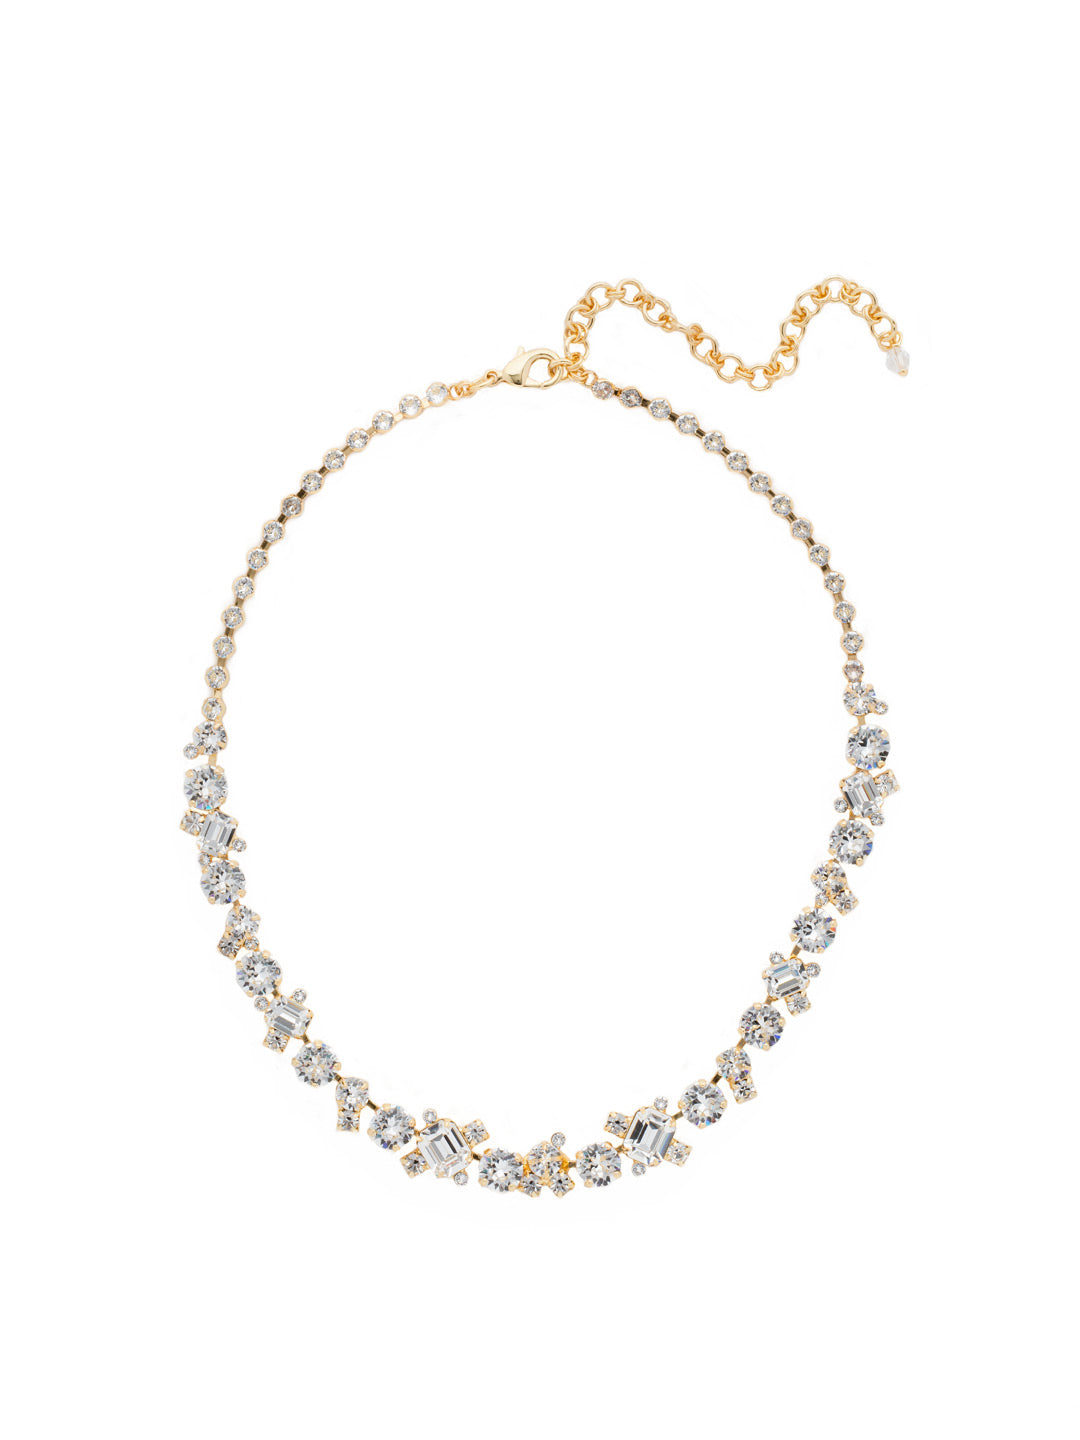 Glittering Multi-Cut Crystal Necklace - NCF6BGCRY